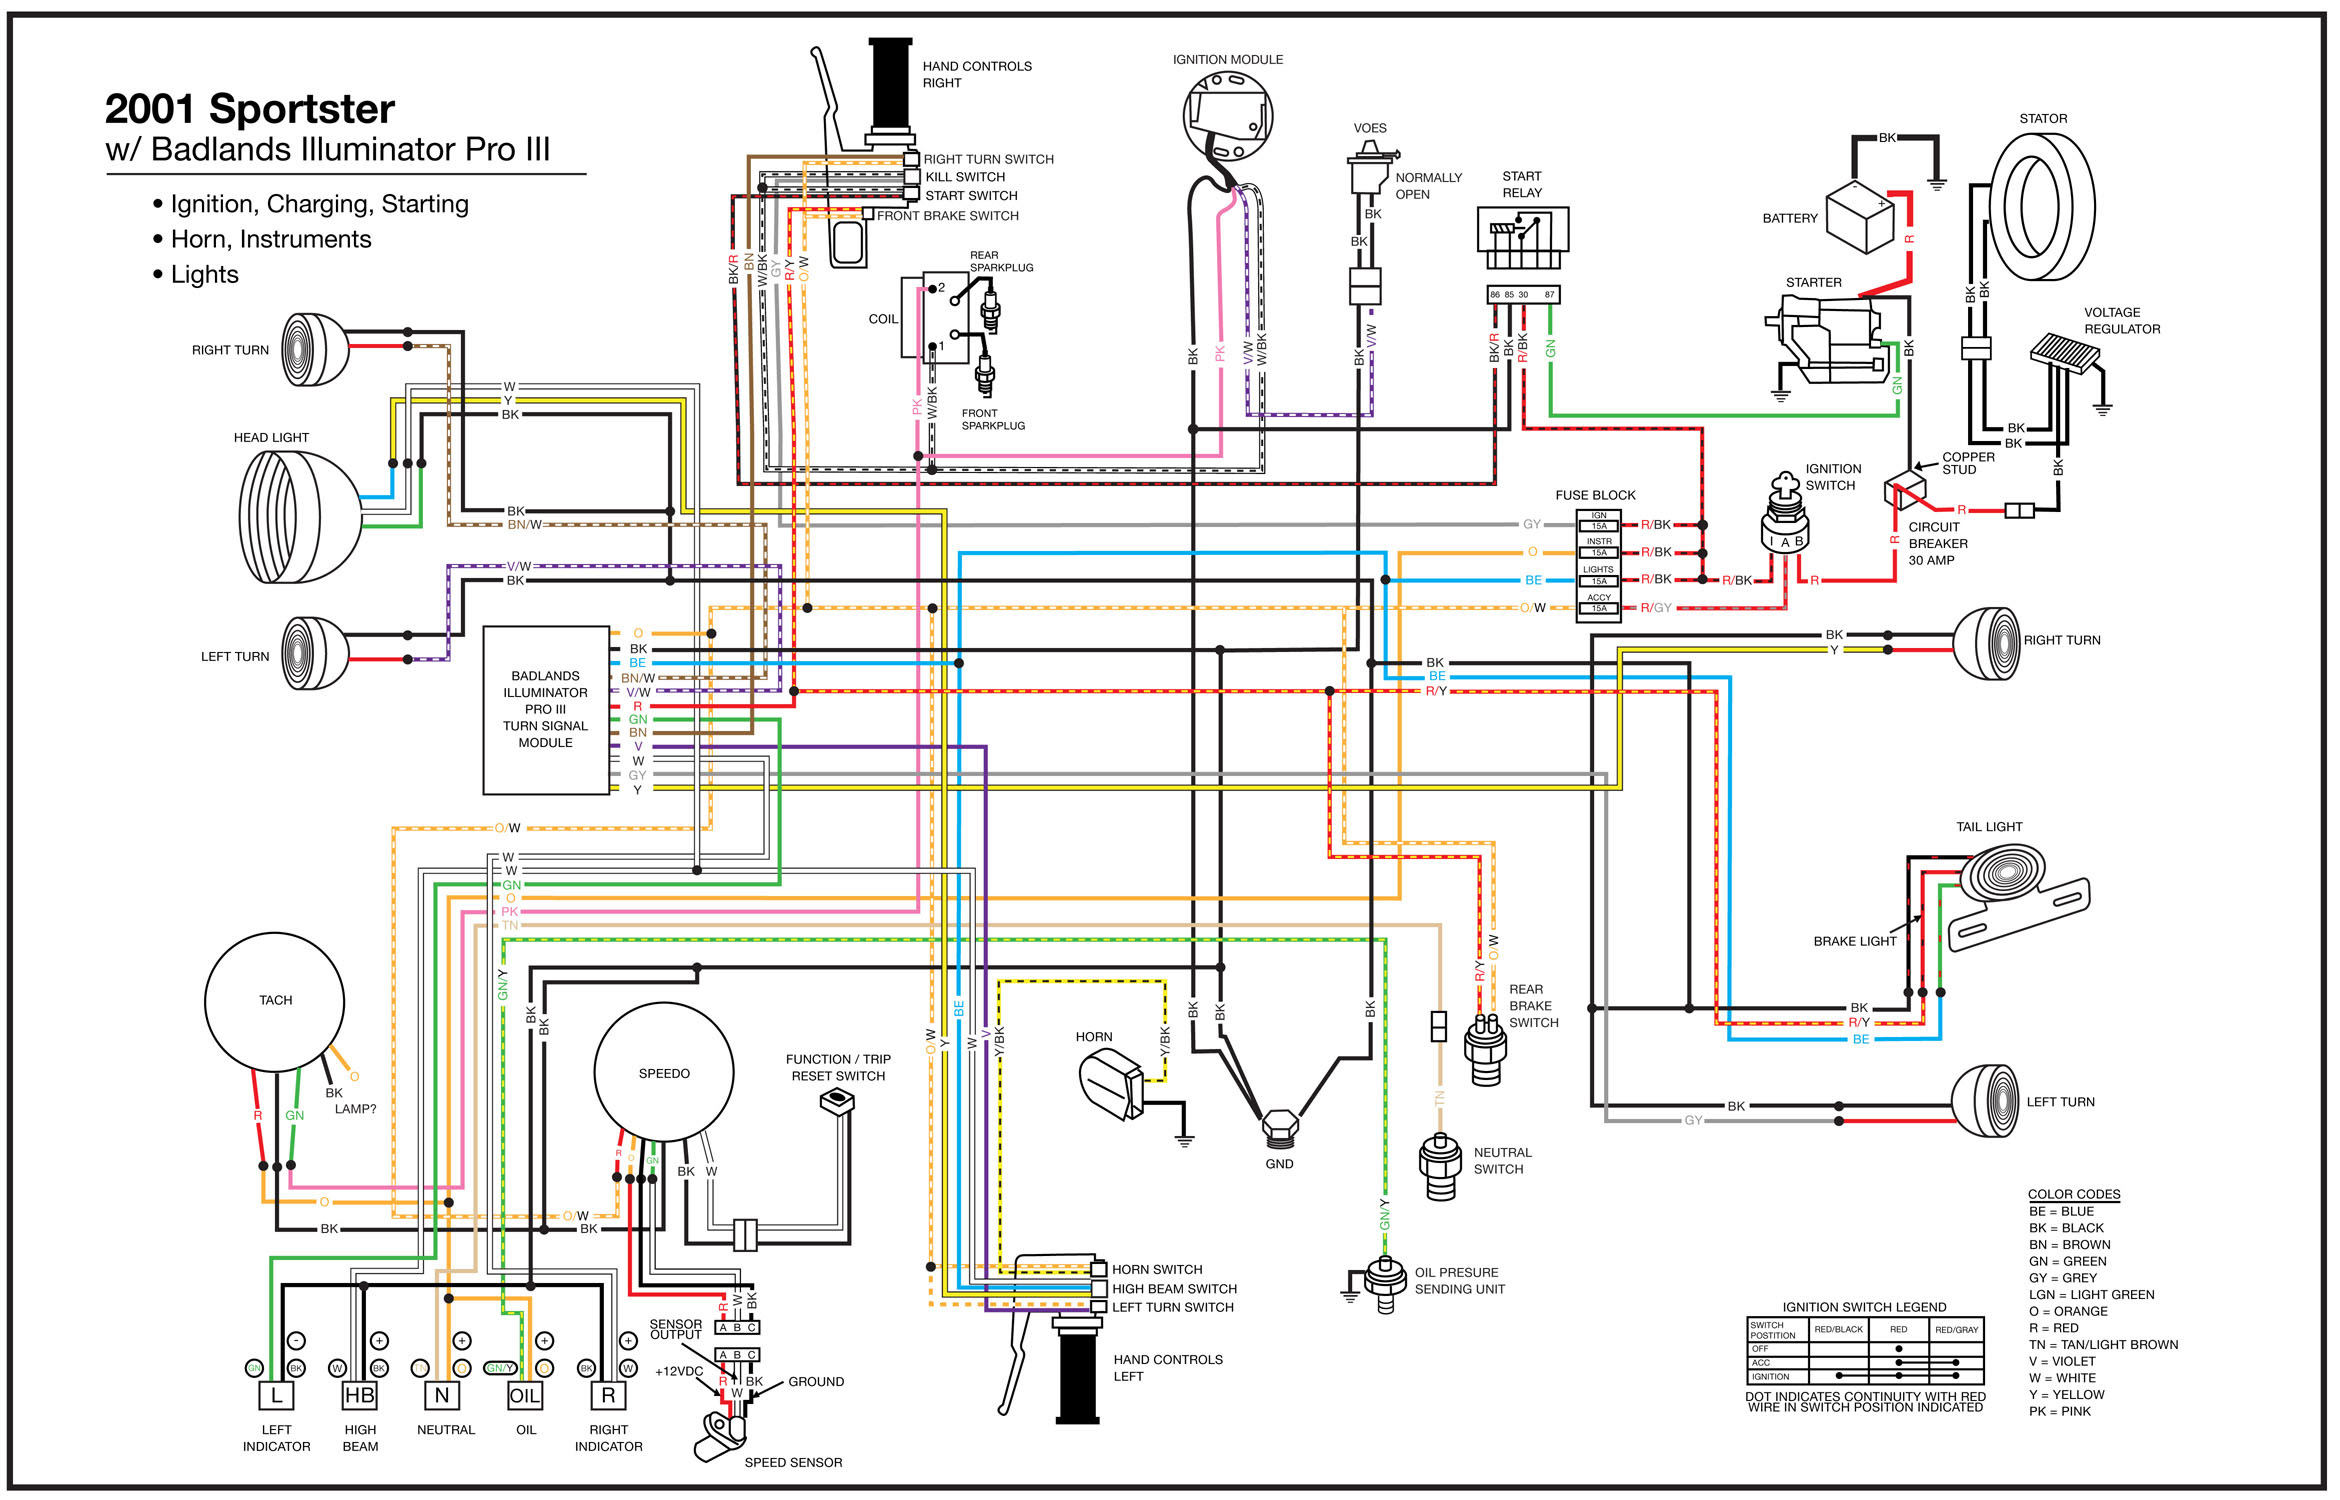 2013 Harley Davidson Wiring Diagram Wiring Diagram Arch Granted Arch Granted Graniantichiumbri It